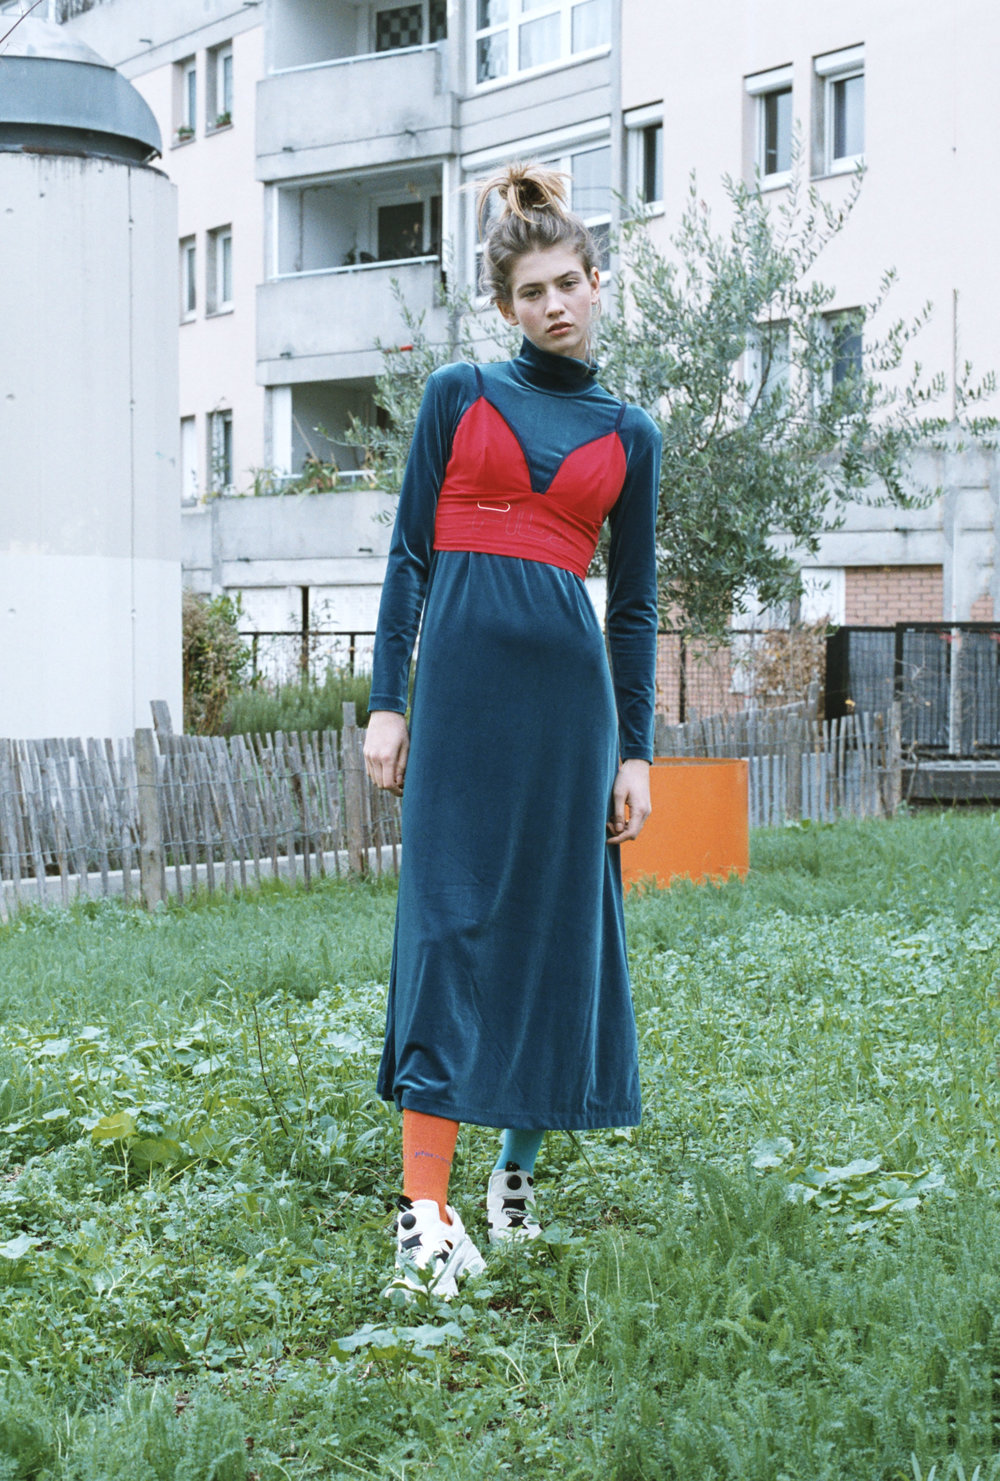 dress & OTHER STORIES, top FILA, socks PIERE CARDIN, shoes MARNI X ZALANDO